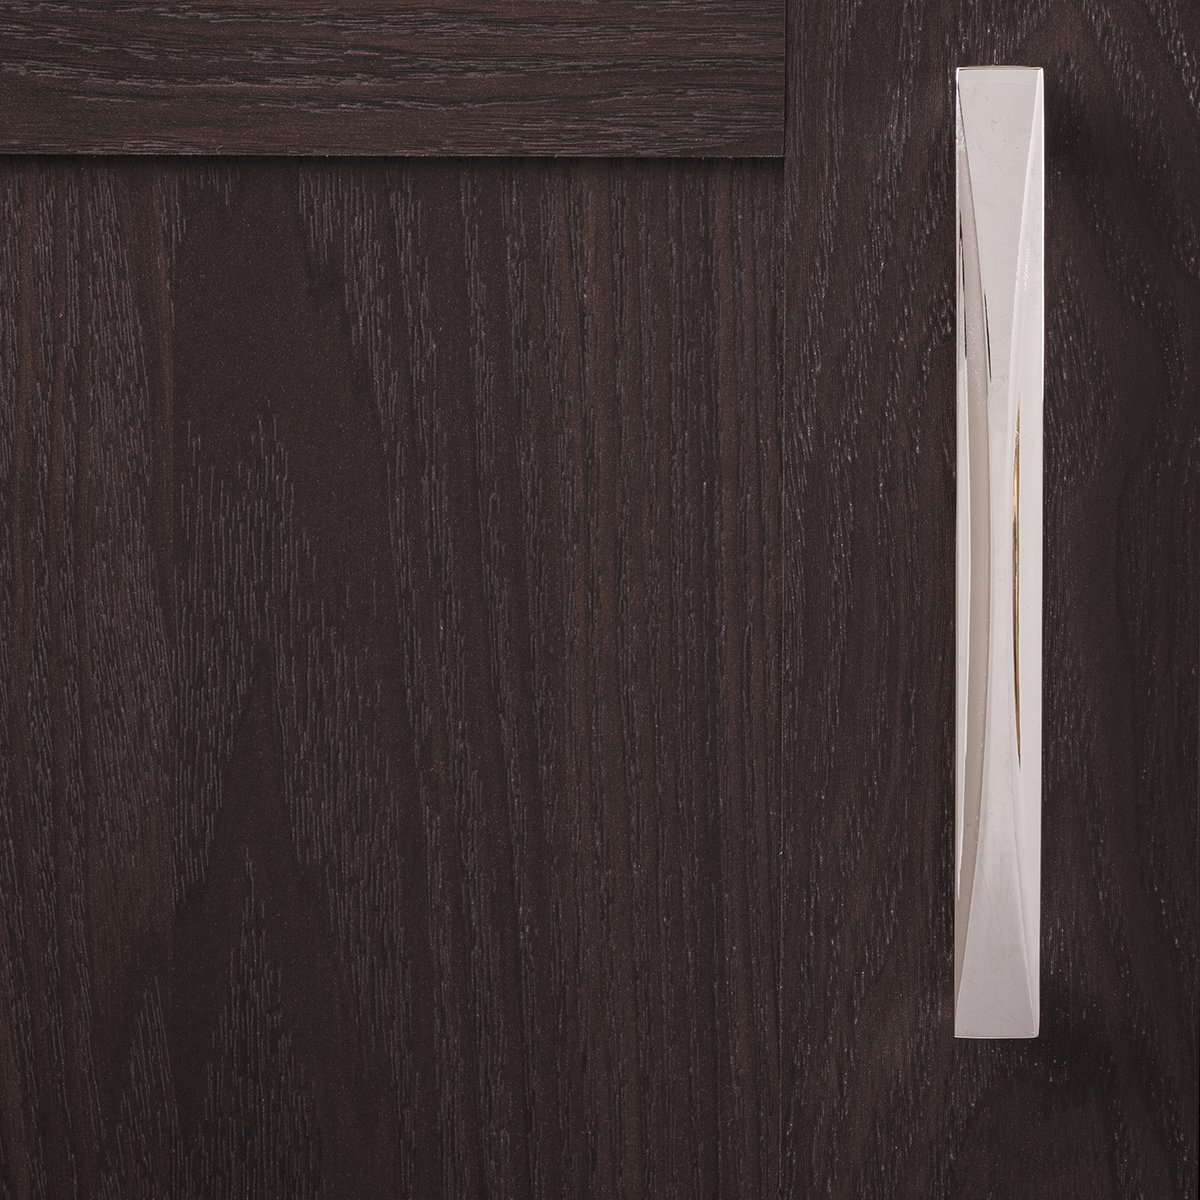 Center to Center Satin Nickel 224mm Hickory Hardware H076134-SN Crest Collection Pull 8-13//16 Inch